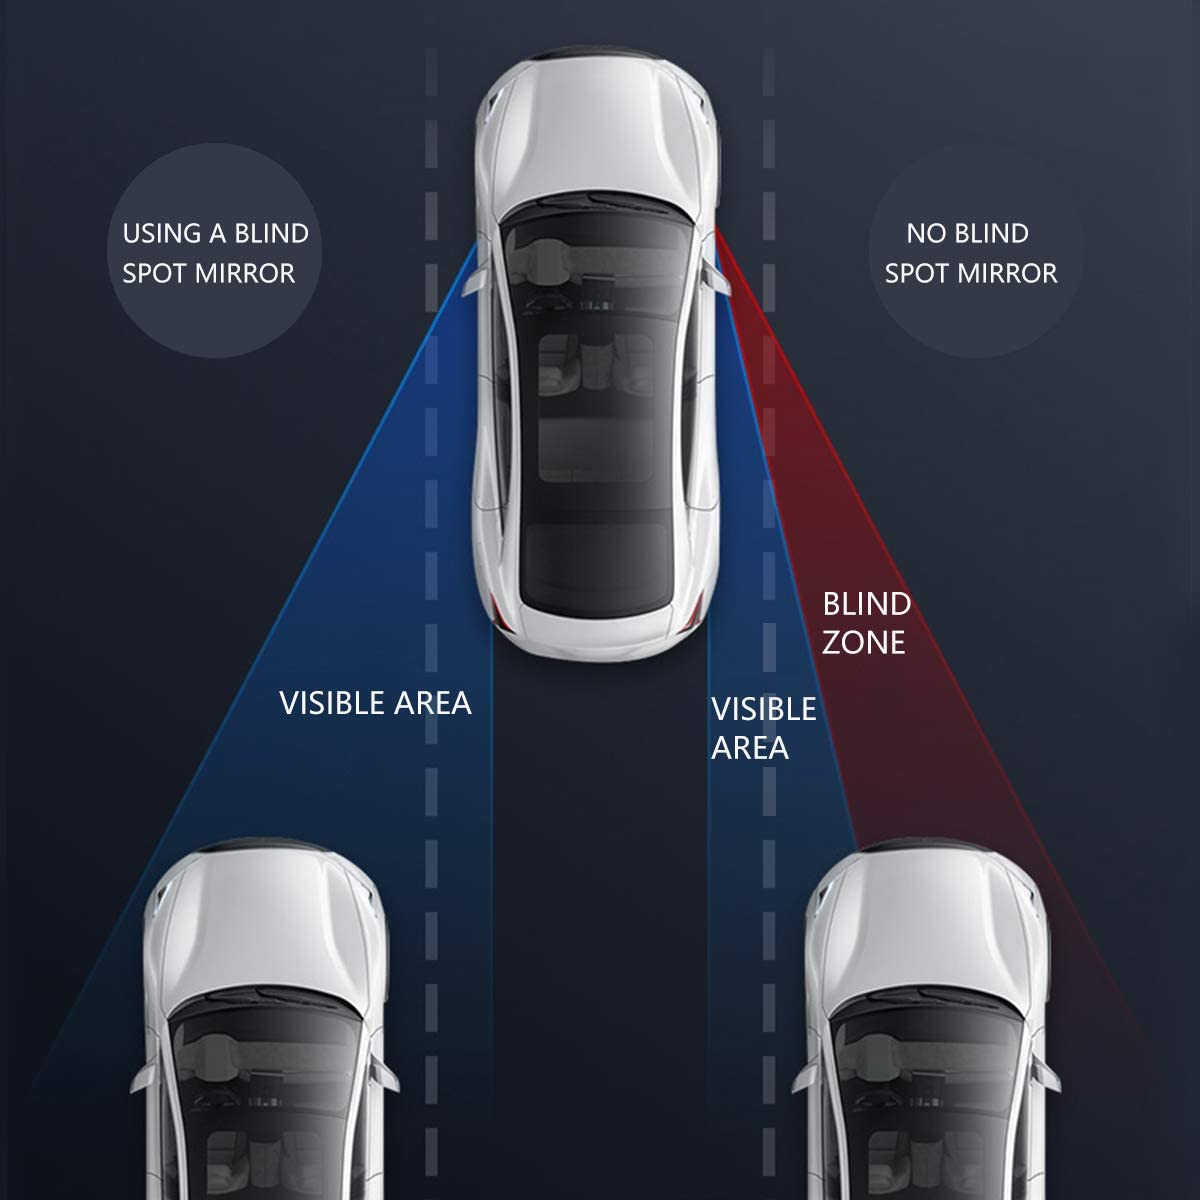 blind spots mirrors